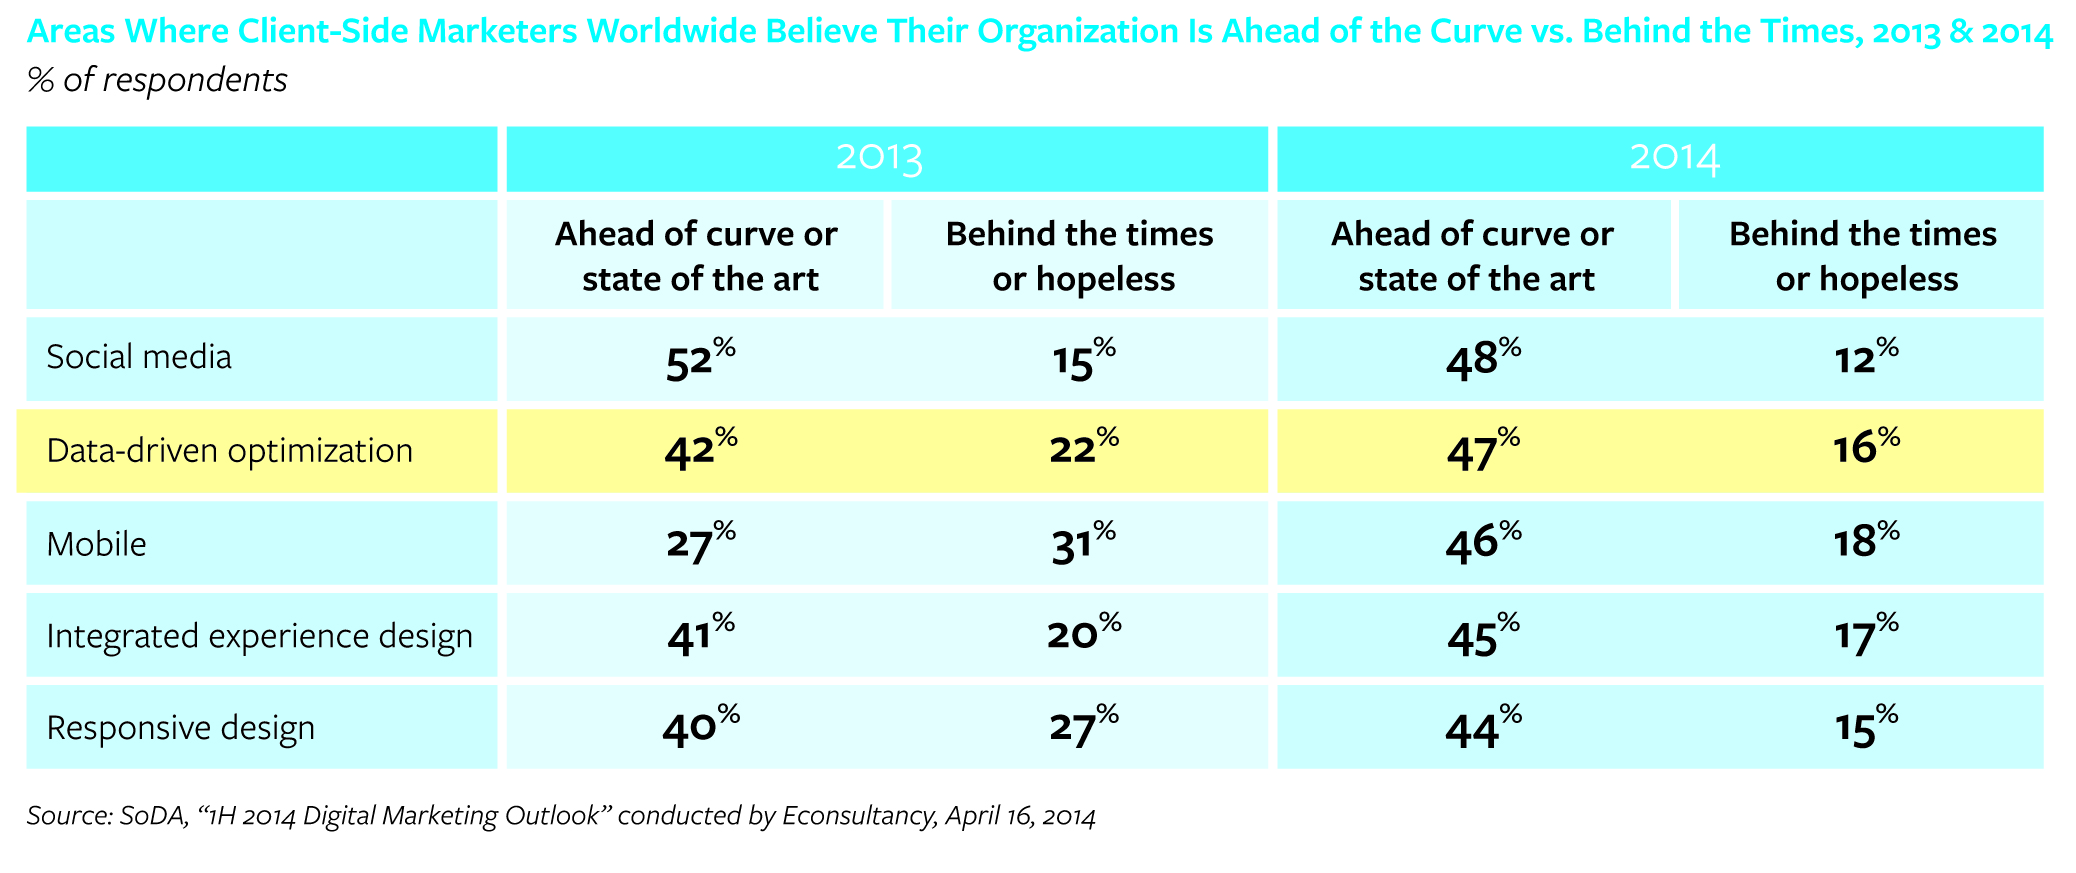 Areas where client-side marketers believe their organisation is ahead of the curve